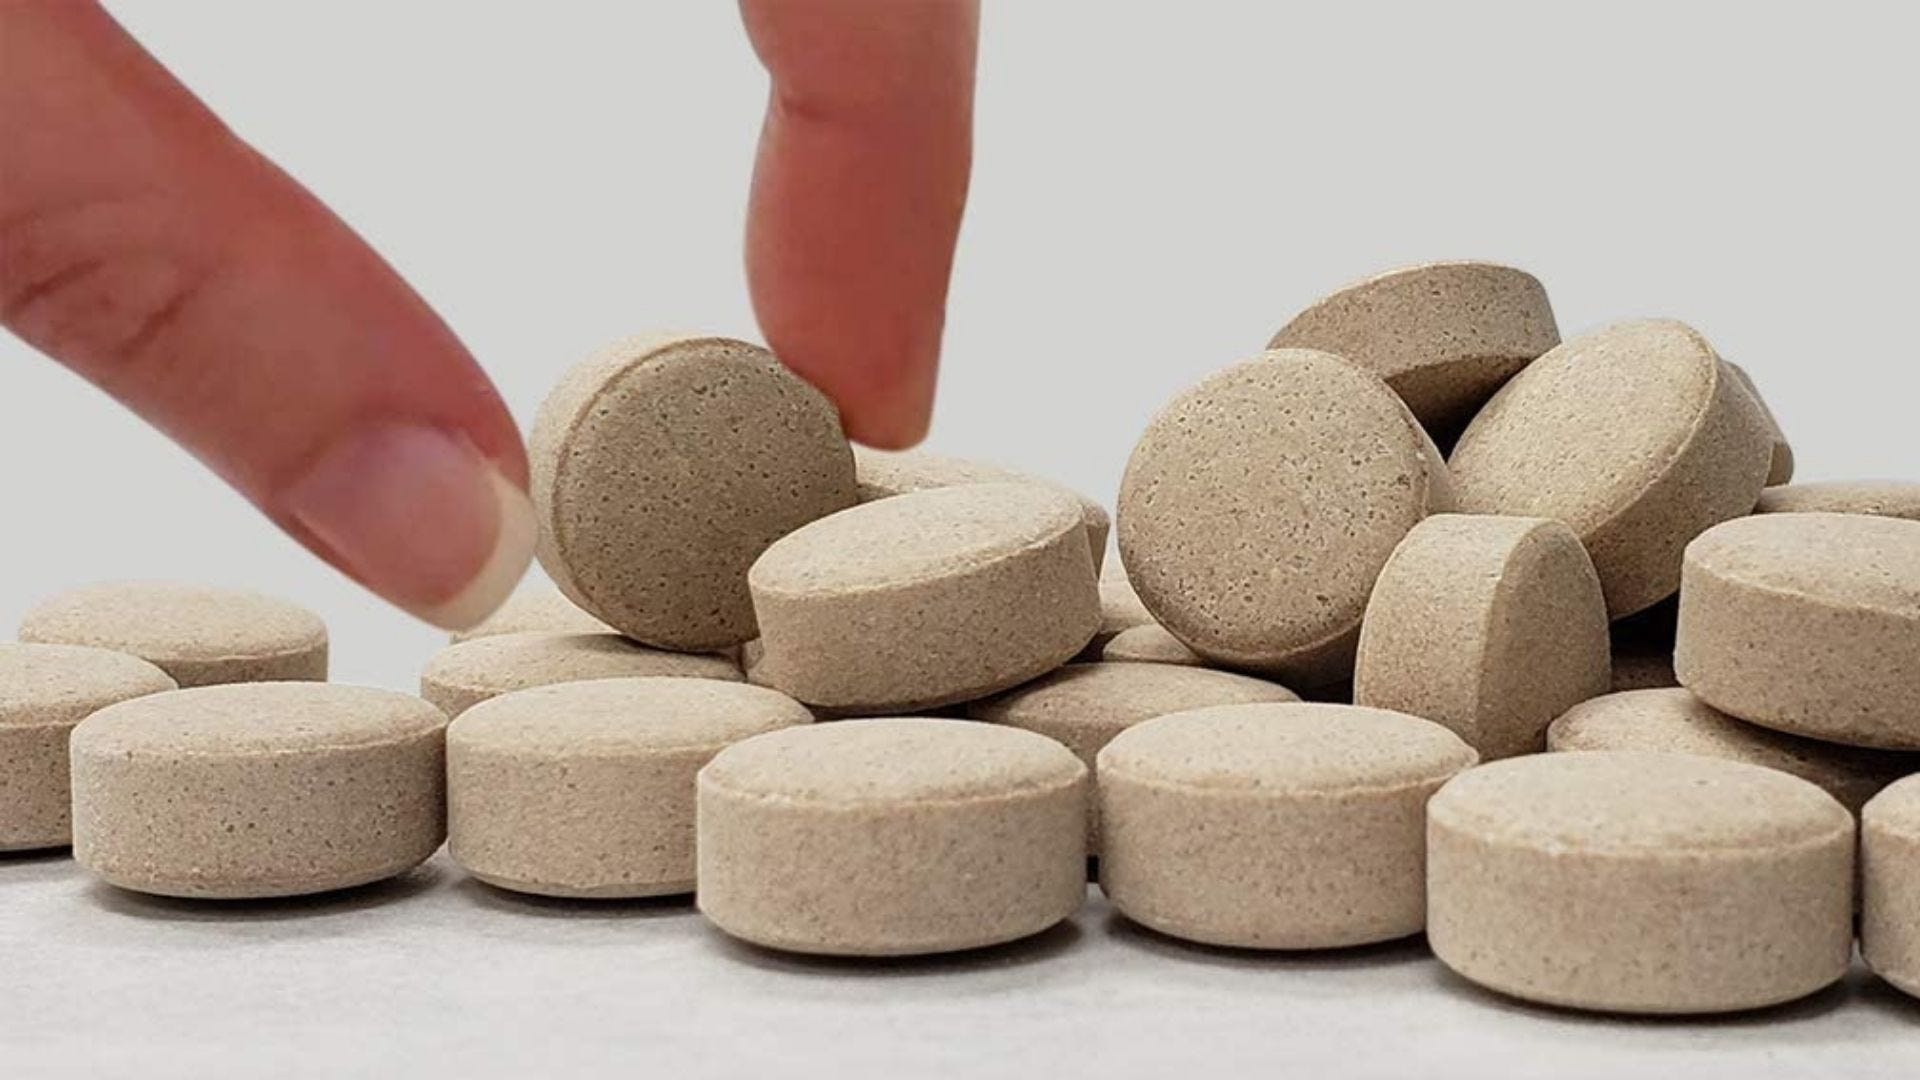 Someone picks up a beige-colored vitamin tablet